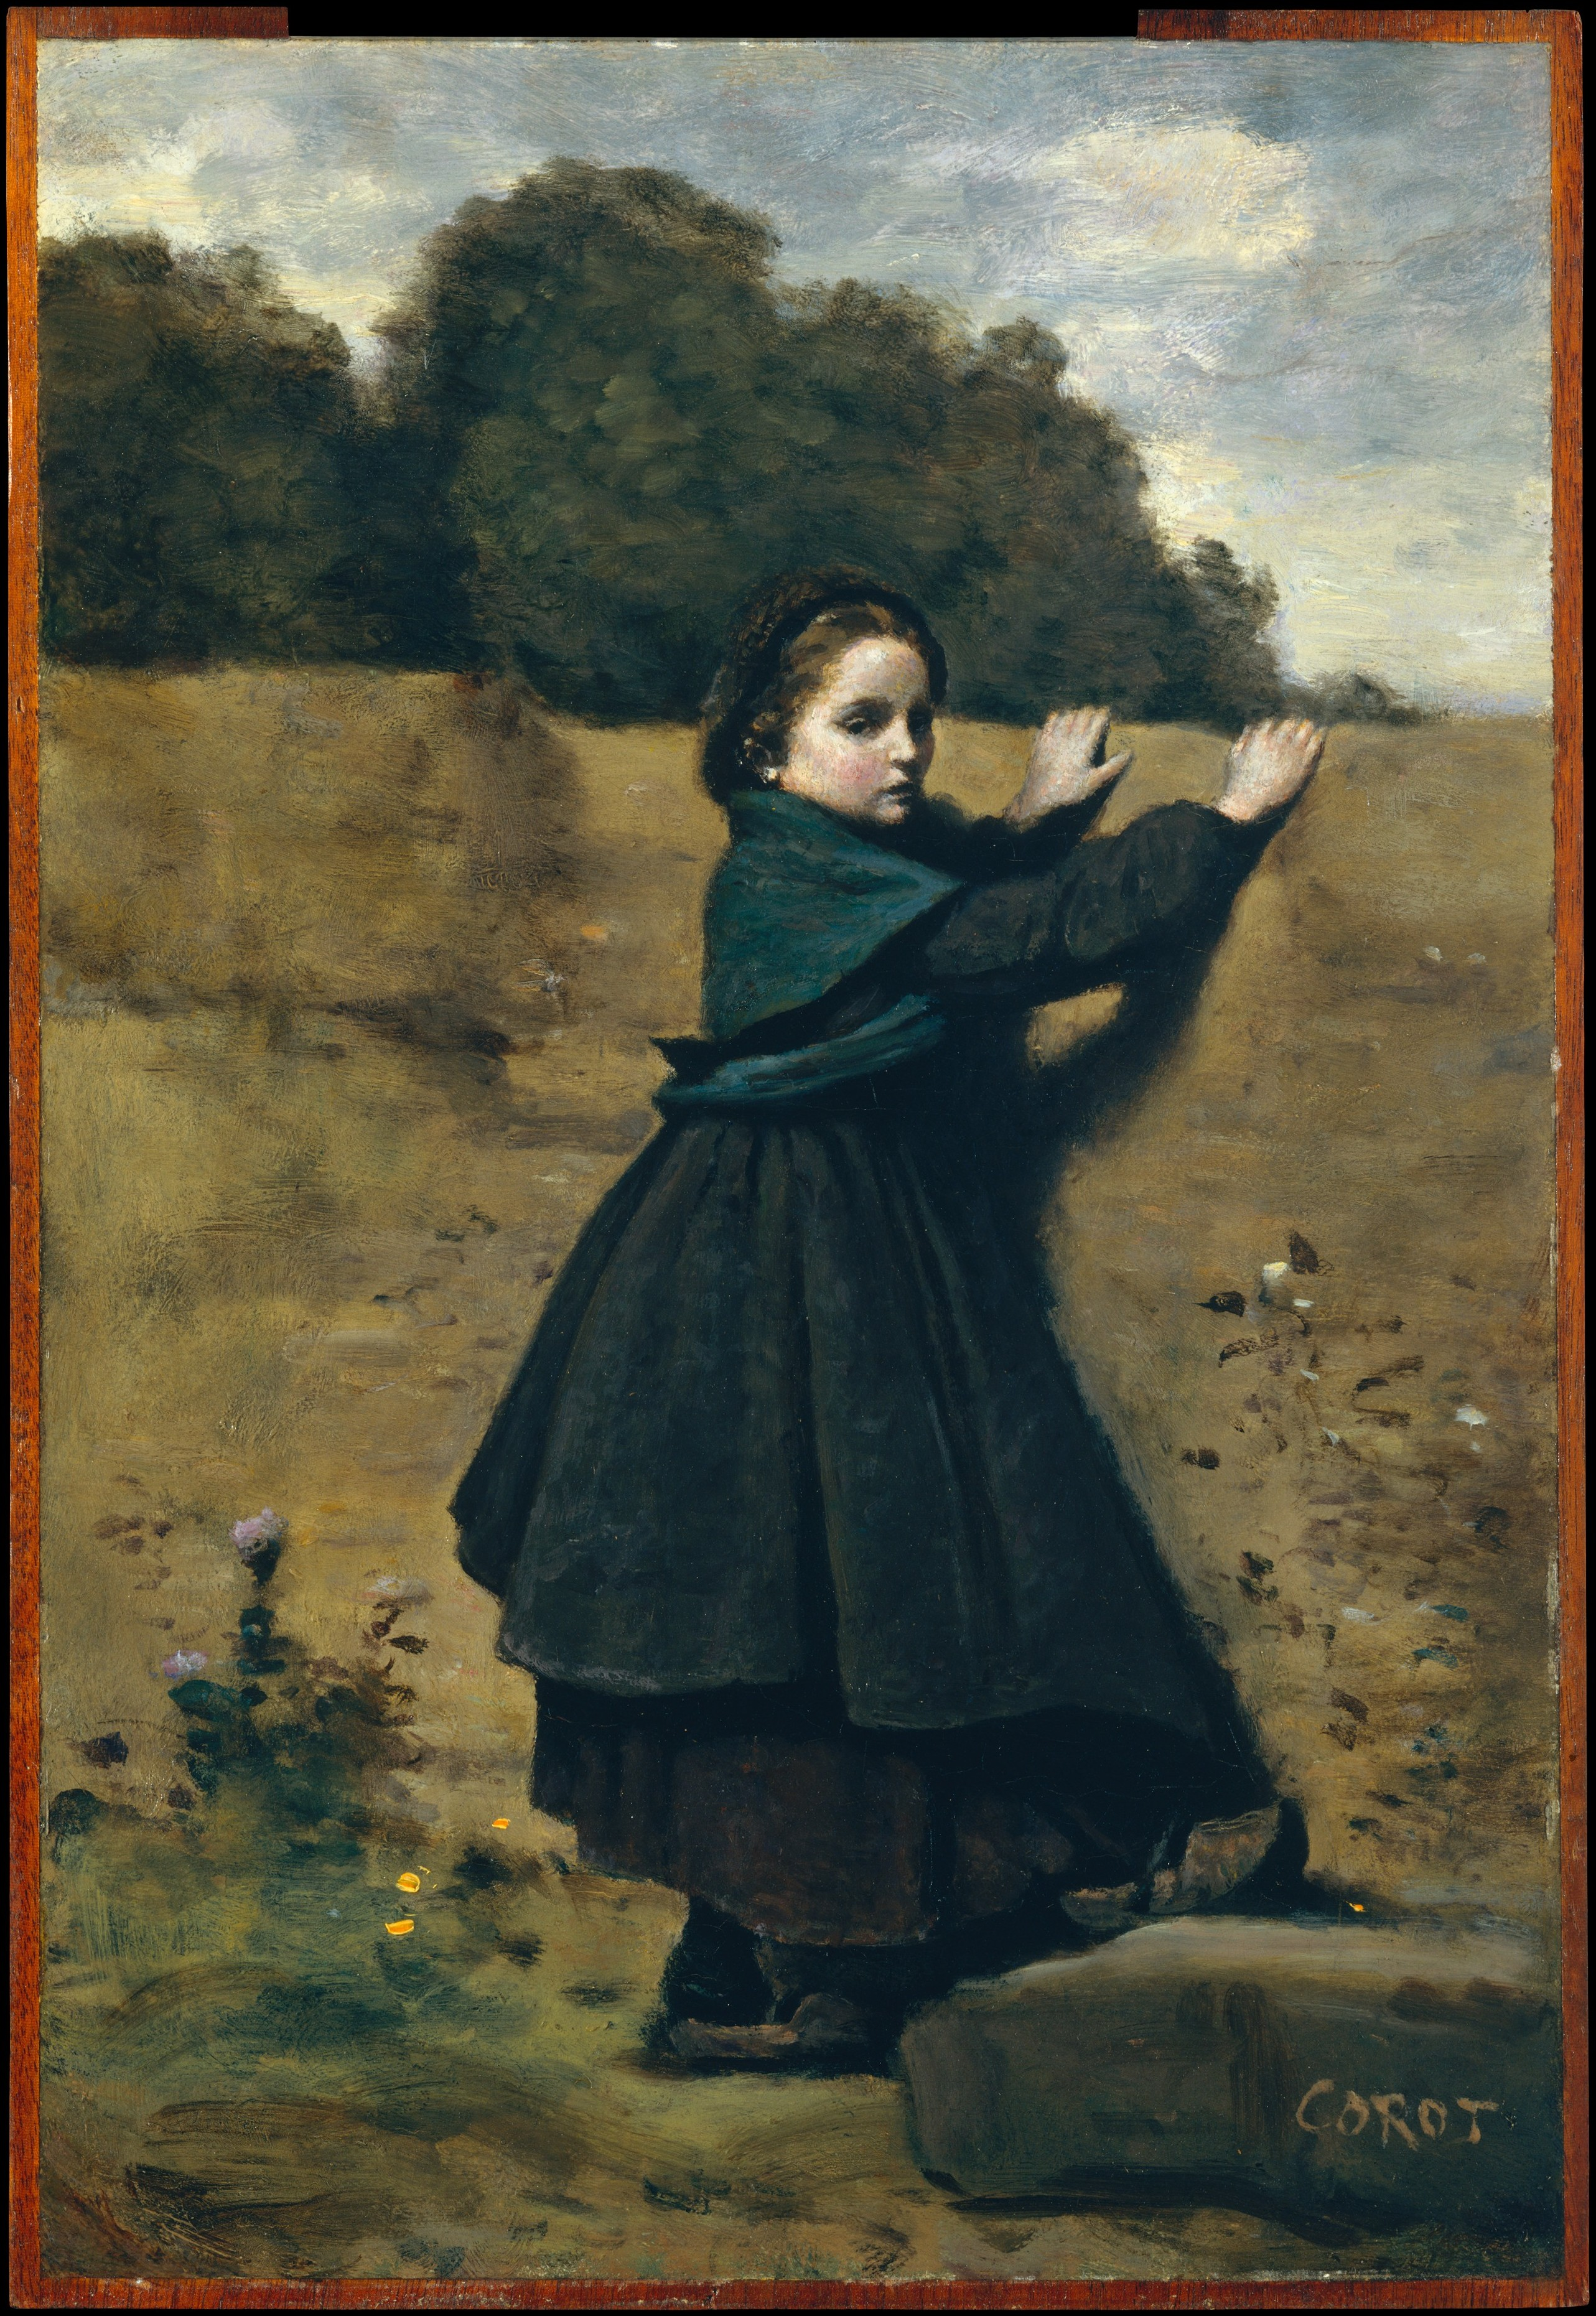 Too much art camille corot 1796 1875 the curious for Camille corot